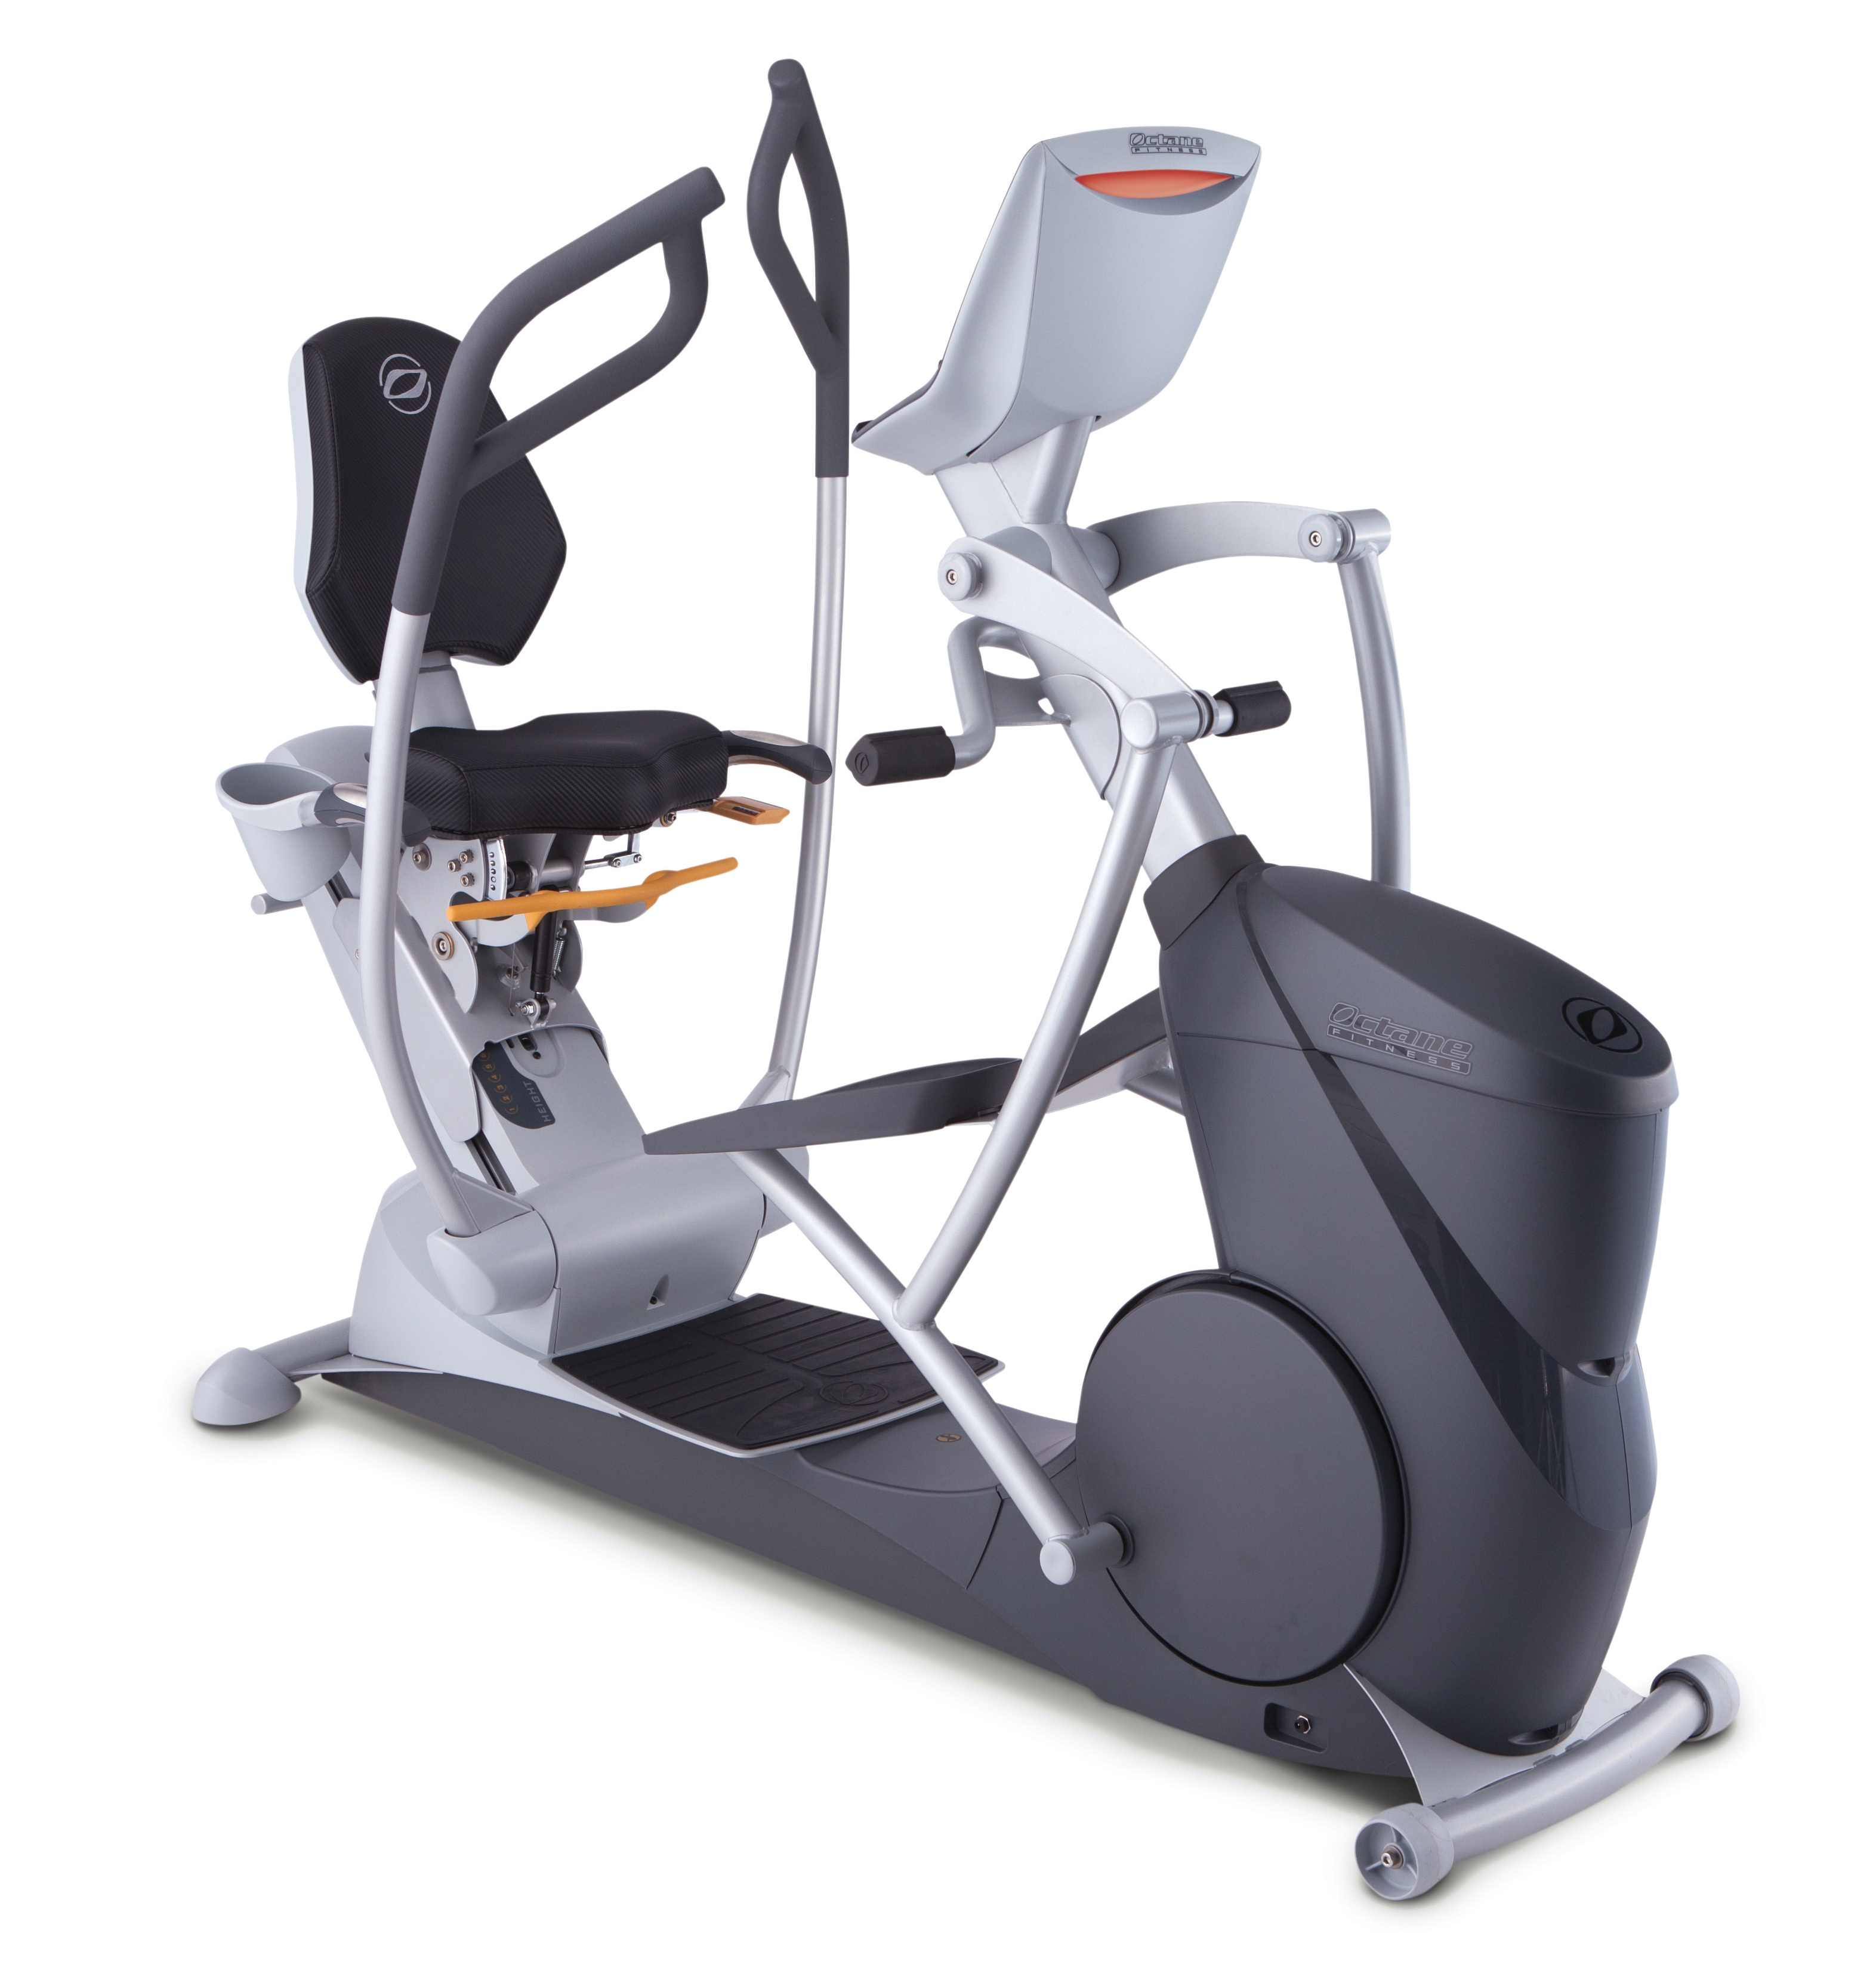 Octane Fitness XR6x Recumbent Elliptical